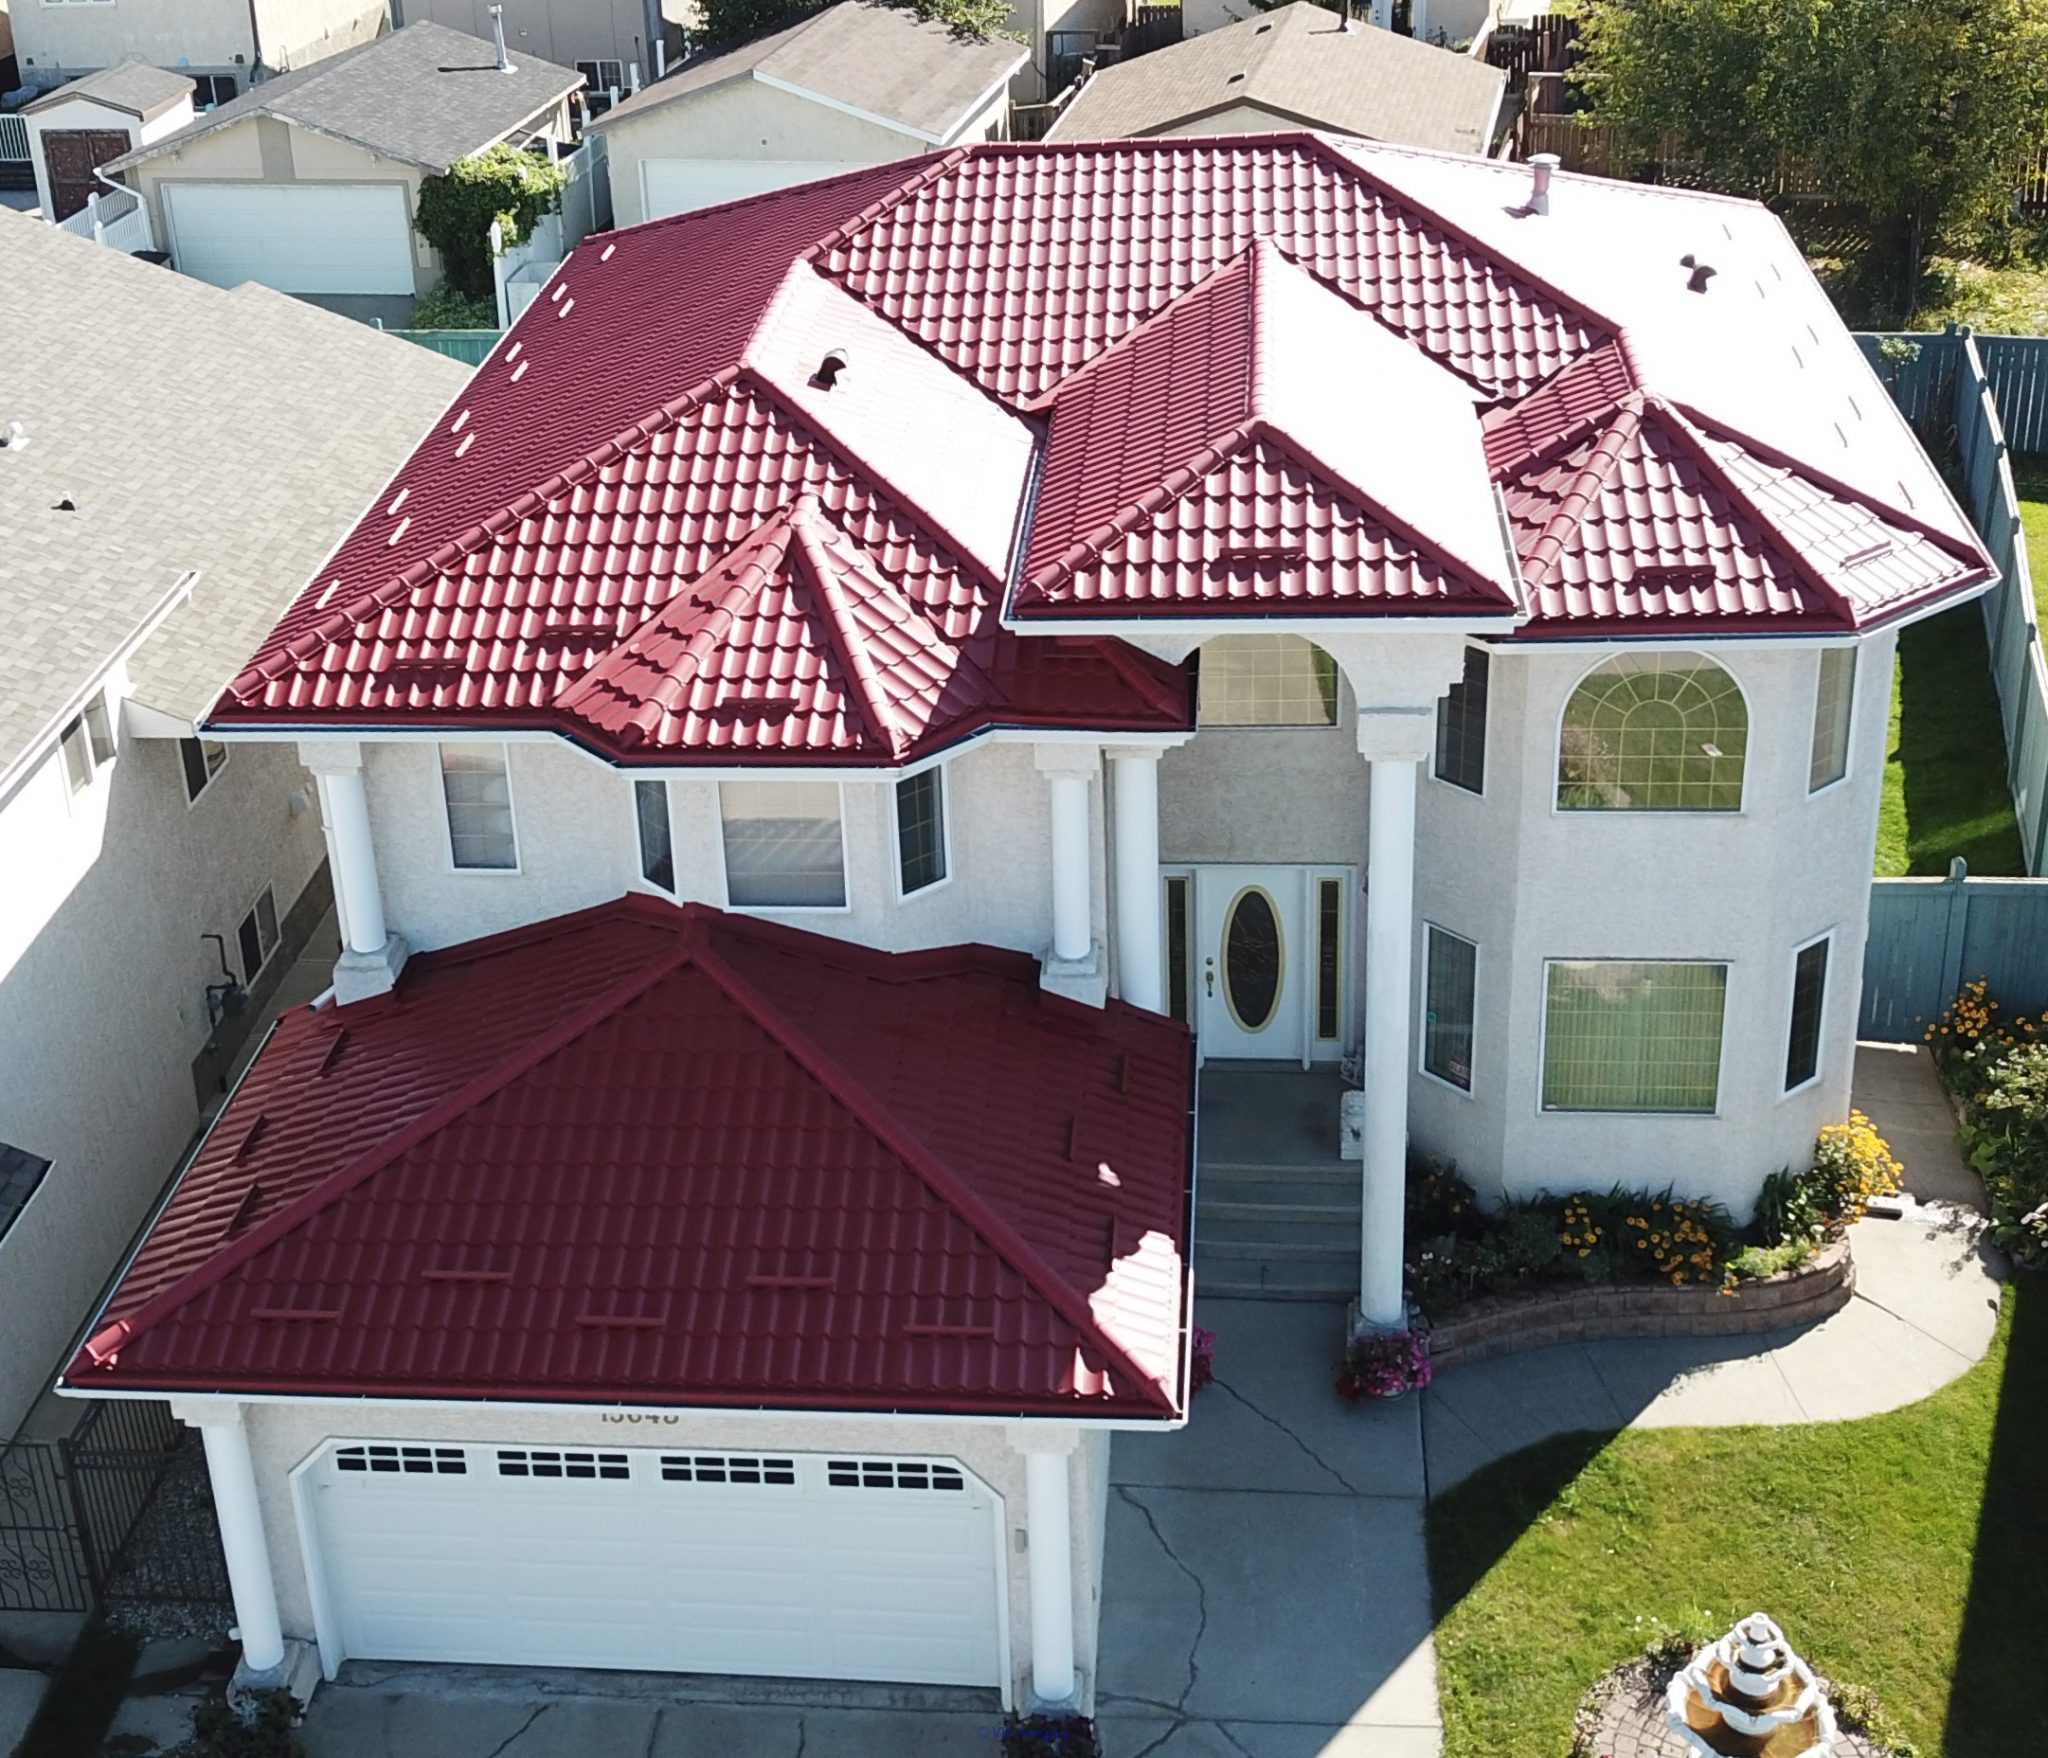 Alberta Metal Tile Roofing Company Edmonton, Alberta, Canada Classifieds